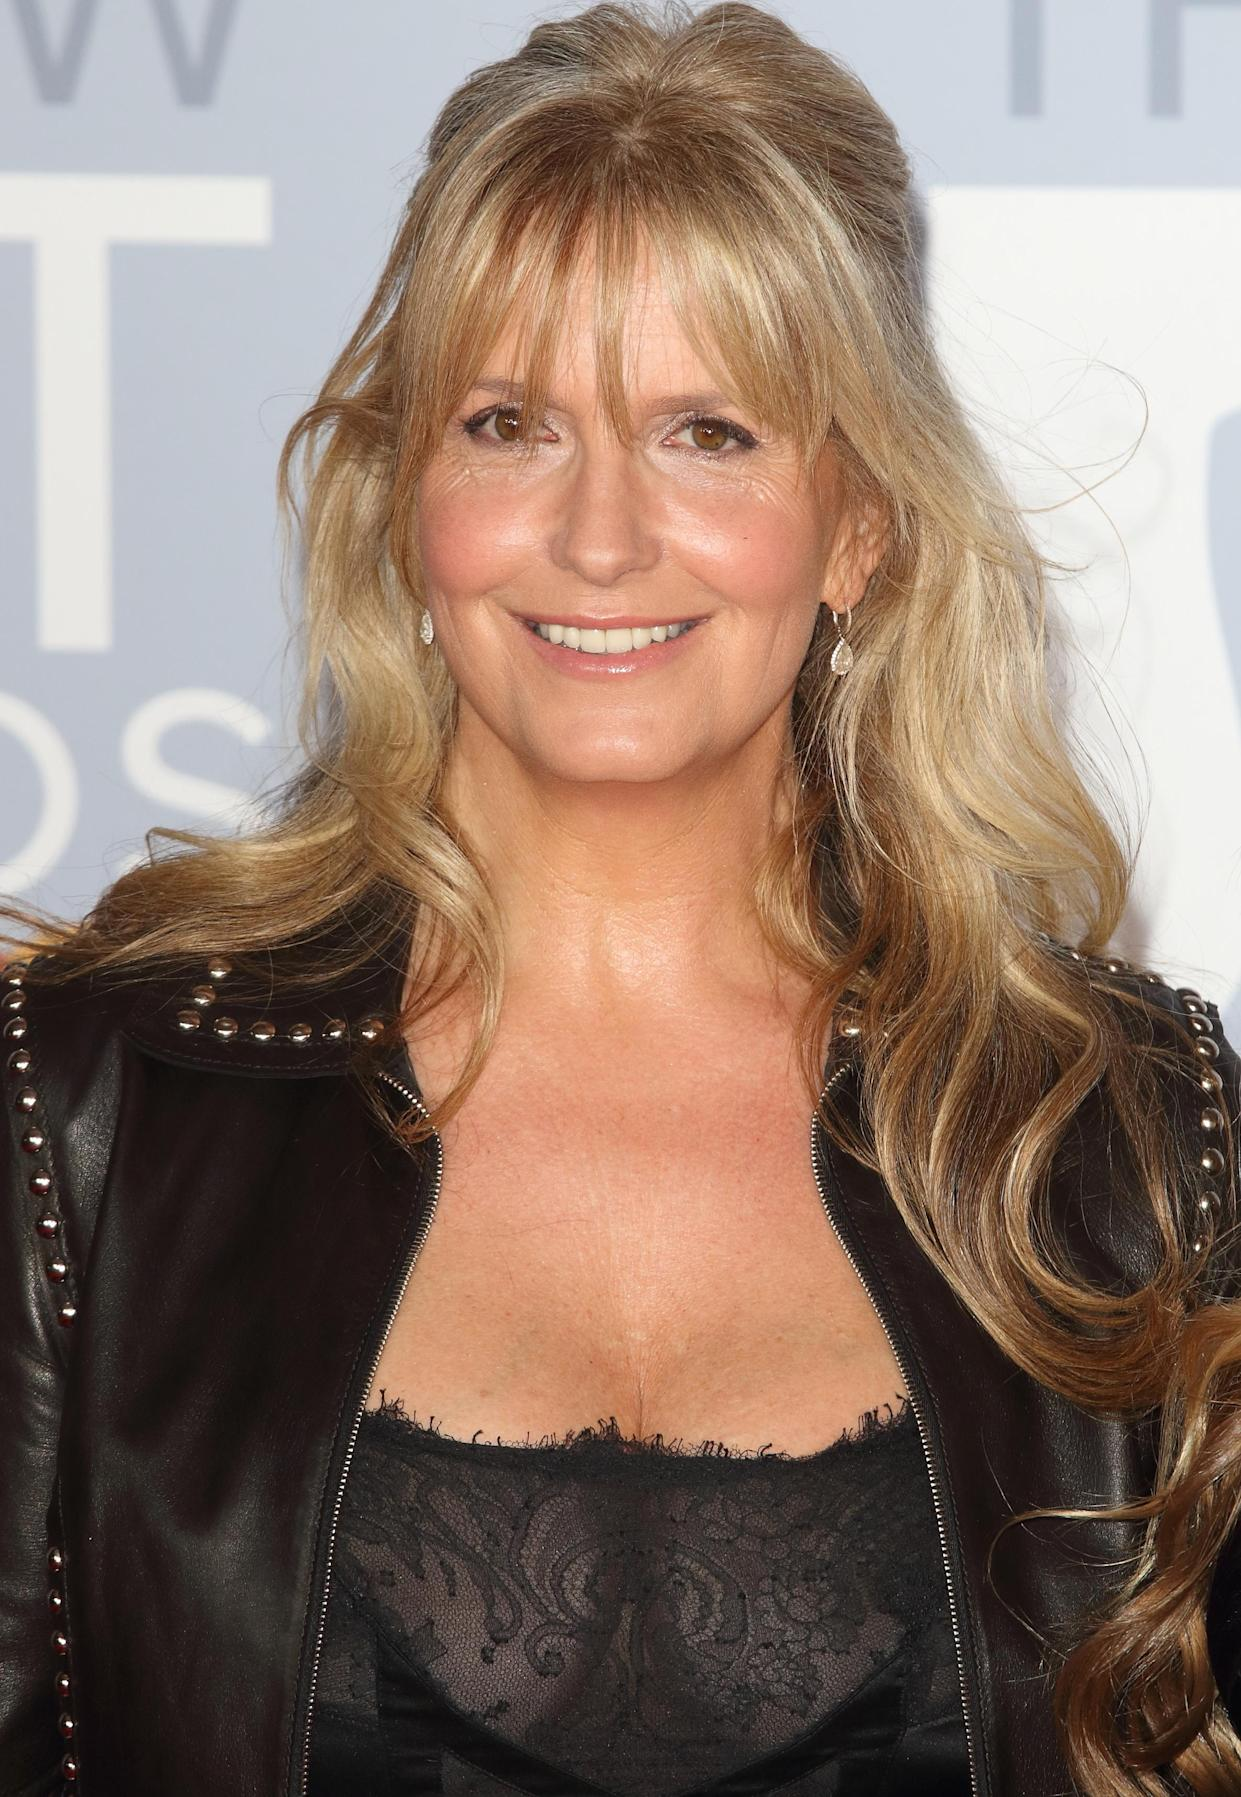 Penny Lancaster attends the 40th Brit Awards Red Carpet arrivals at The O2 Arena in London. (Photo by Keith Mayhew / SOPA Images/Sipa USA)